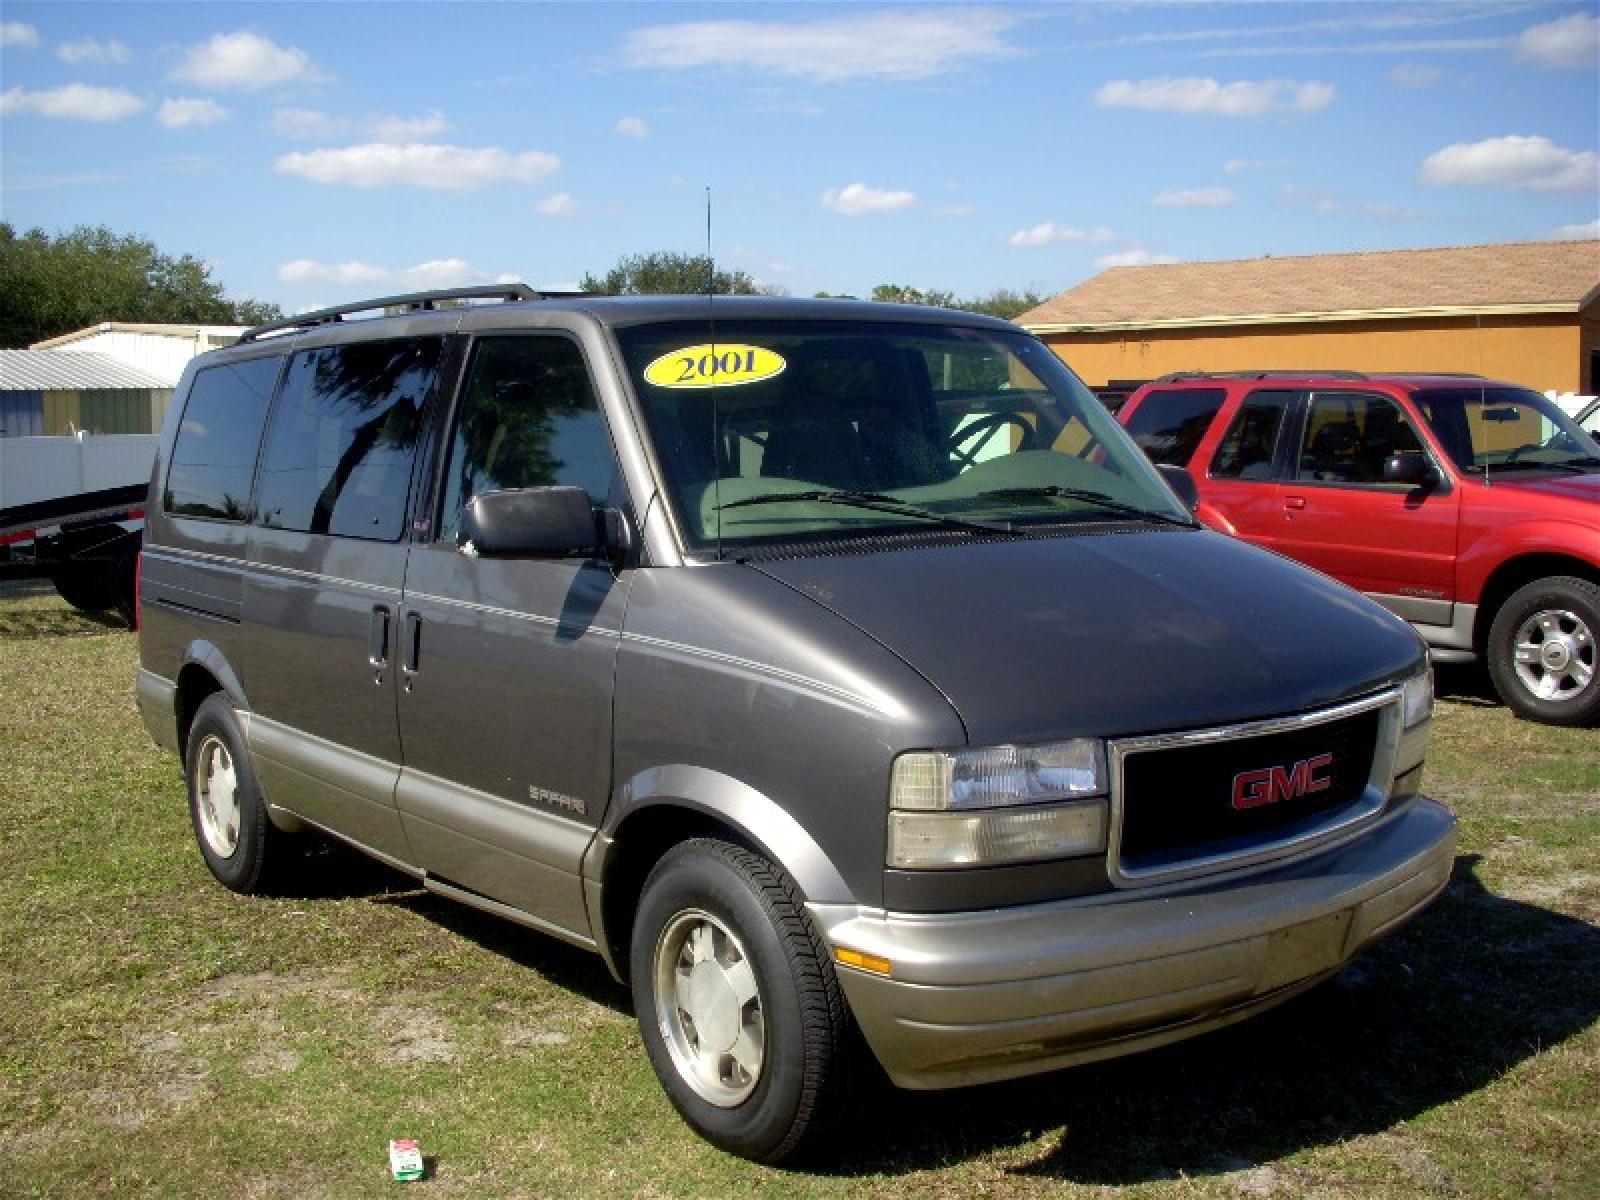 800 1024 1280 1600 origin 2001 gmc safari